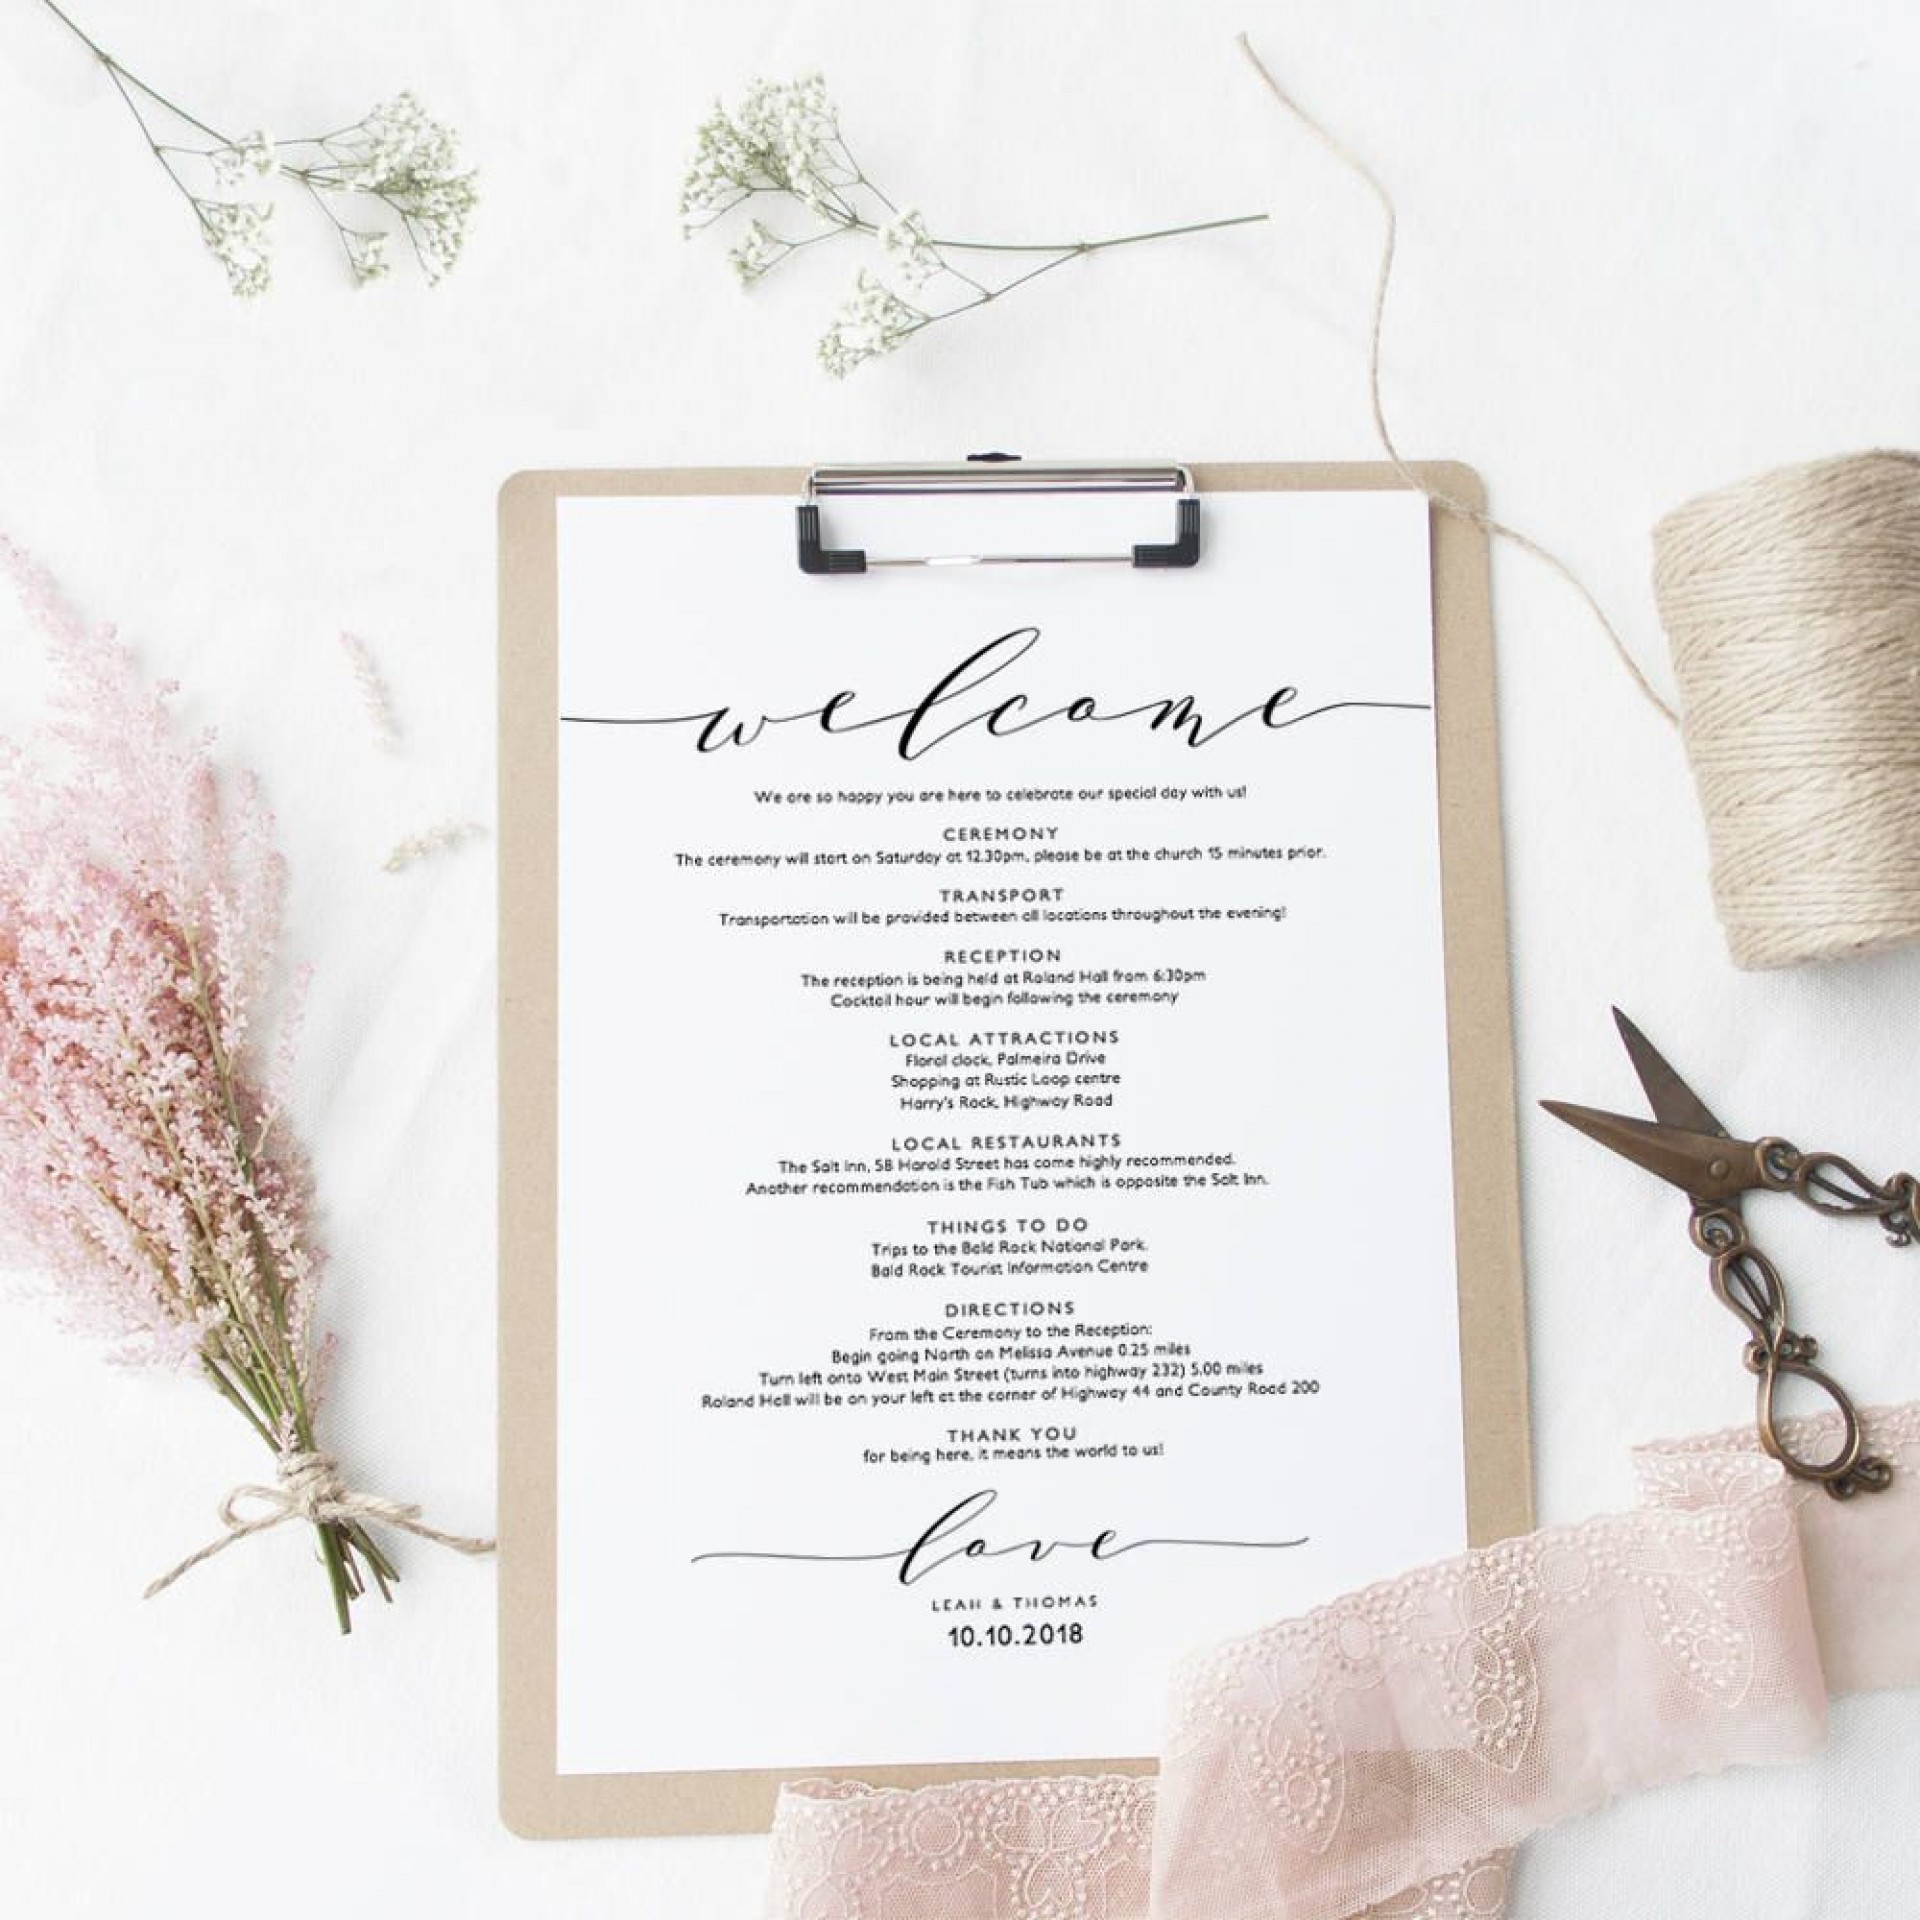 005 Singular Wedding Welcome Letter Template Word Highest Clarity 1920